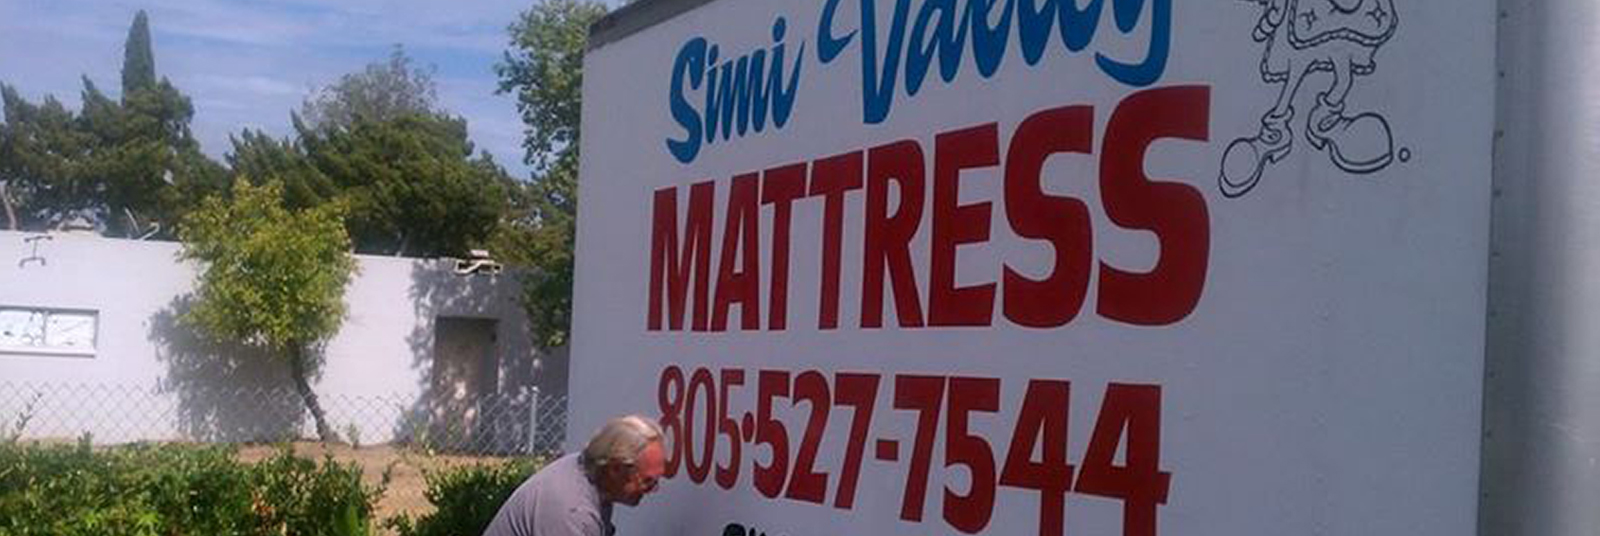 Simi Valley Mattress Store